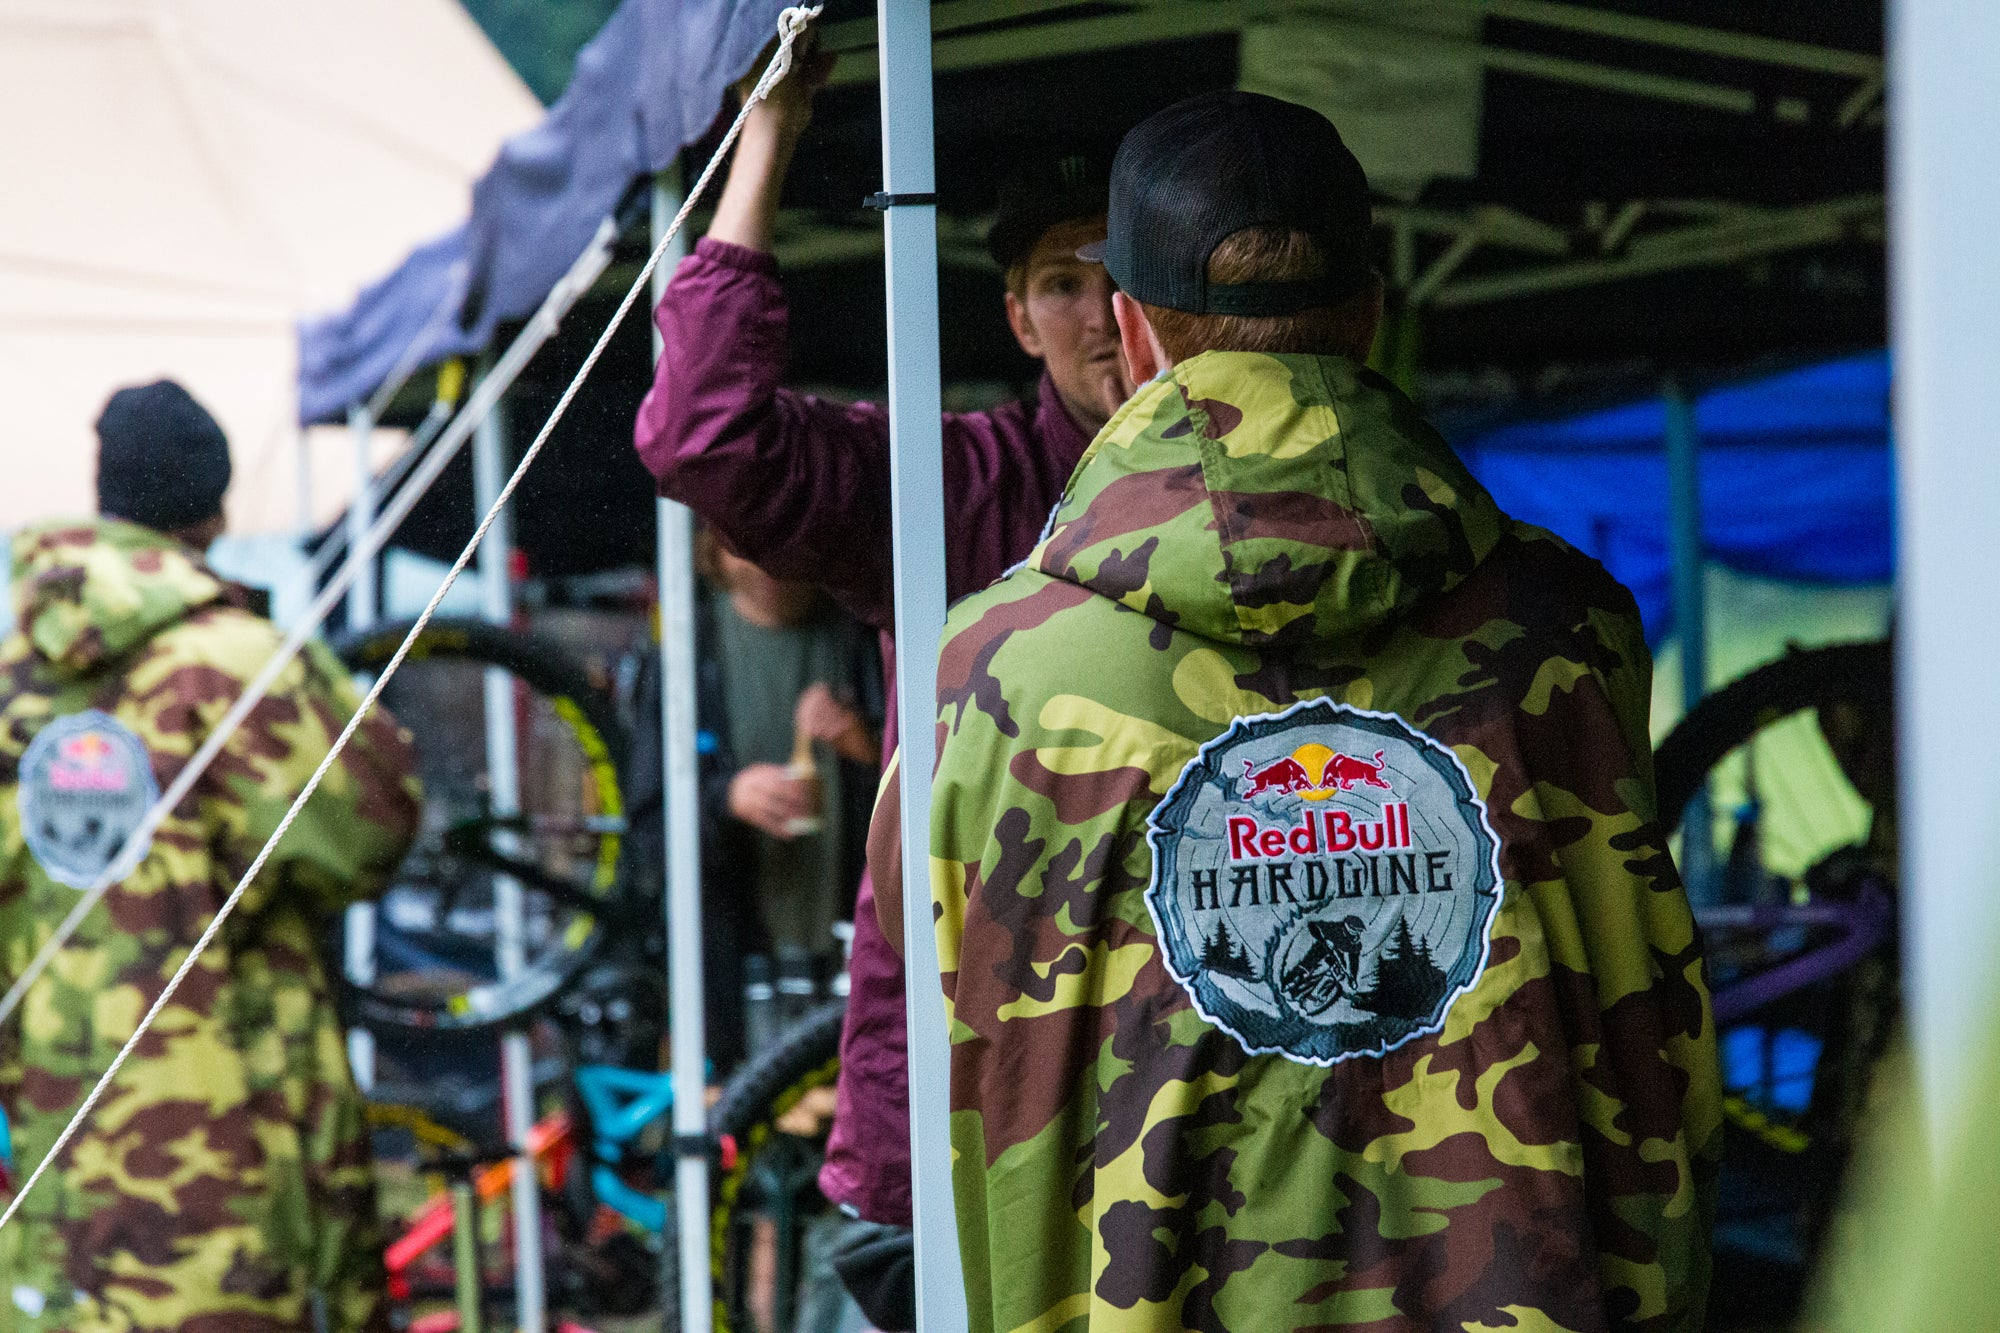 Limited edition Red Bull Hardline dryrobe